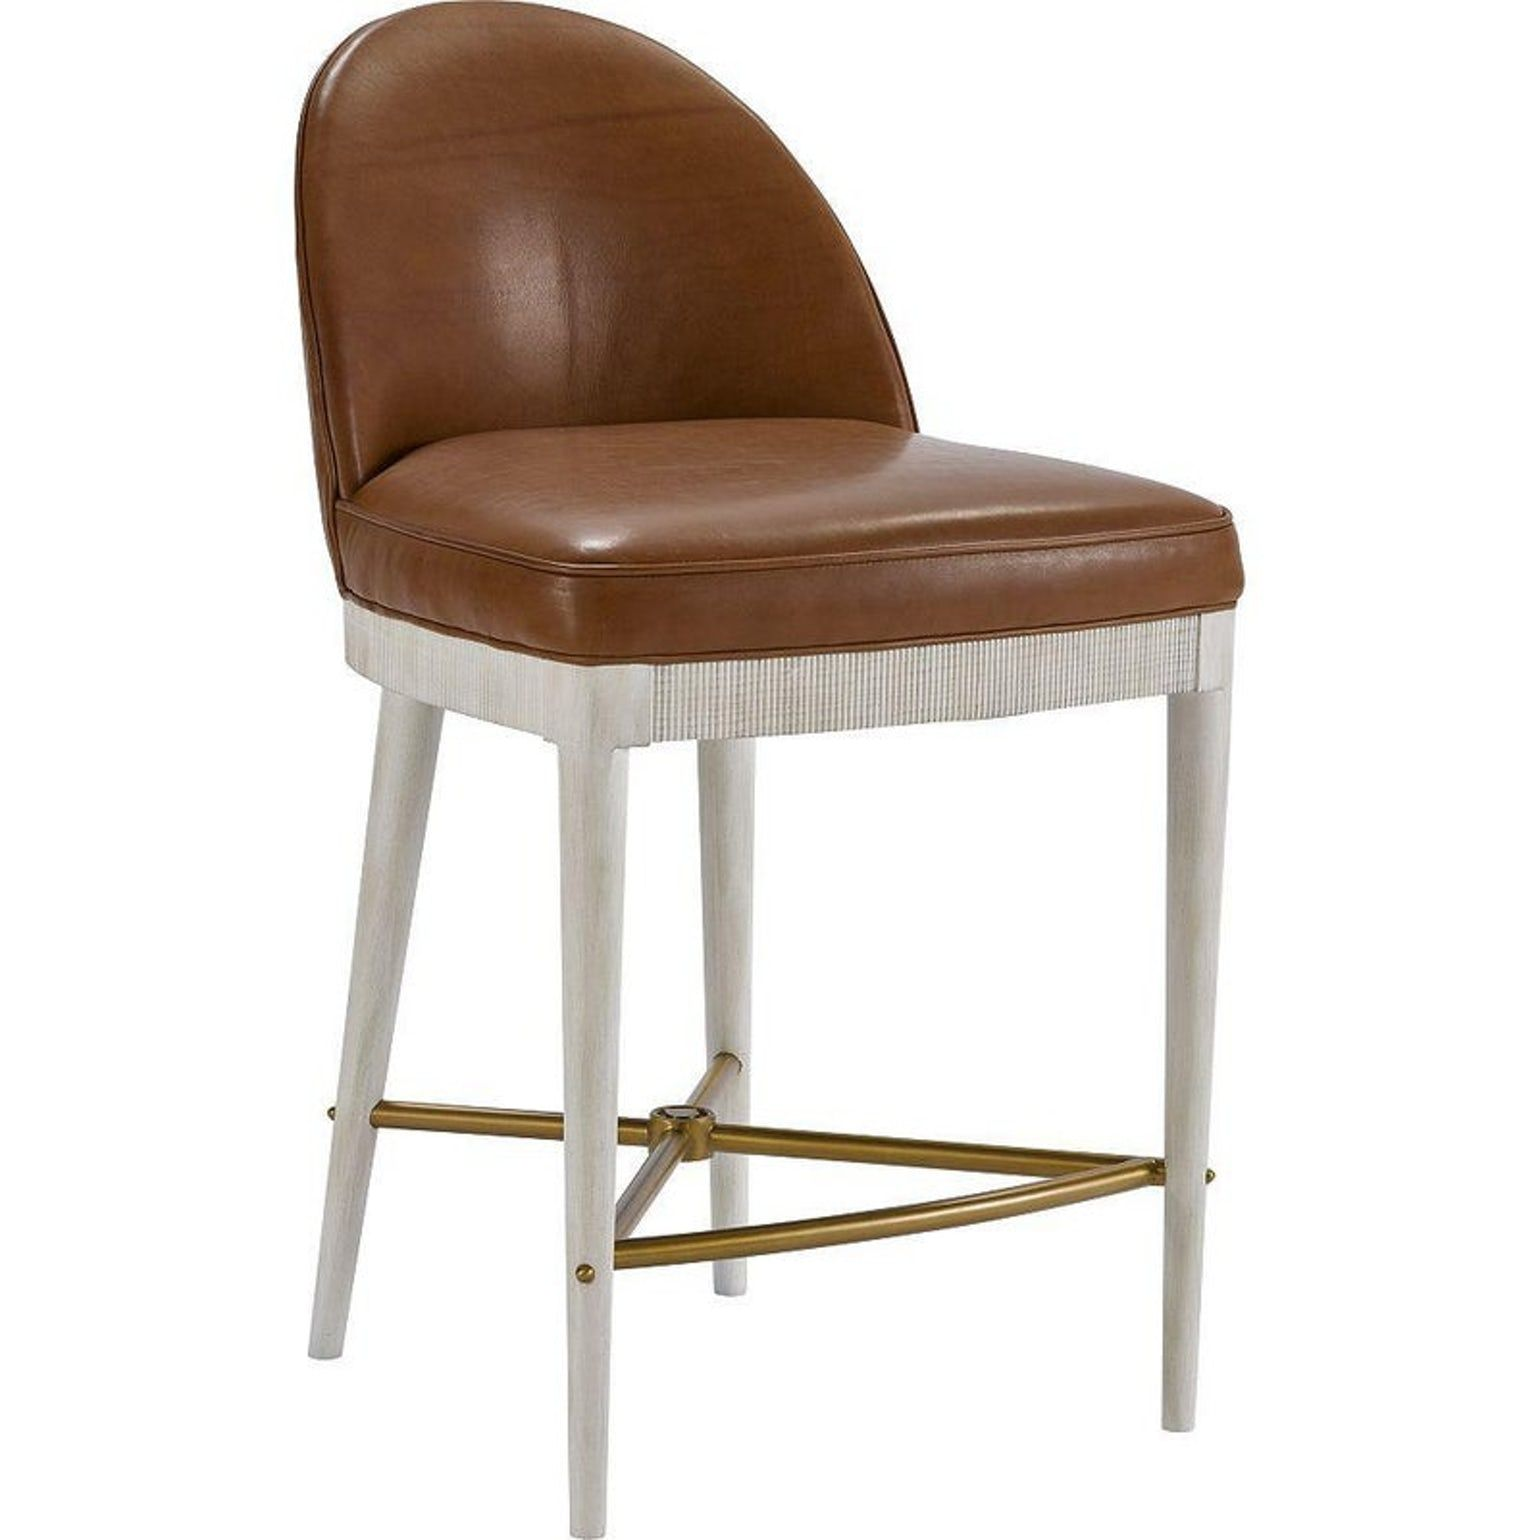 Laurent Counter Stool Contemporary Modern Barstools Counter Stools Dering Hall In 2020 Dining Chairs Modern Bar Stools Hickory Chair